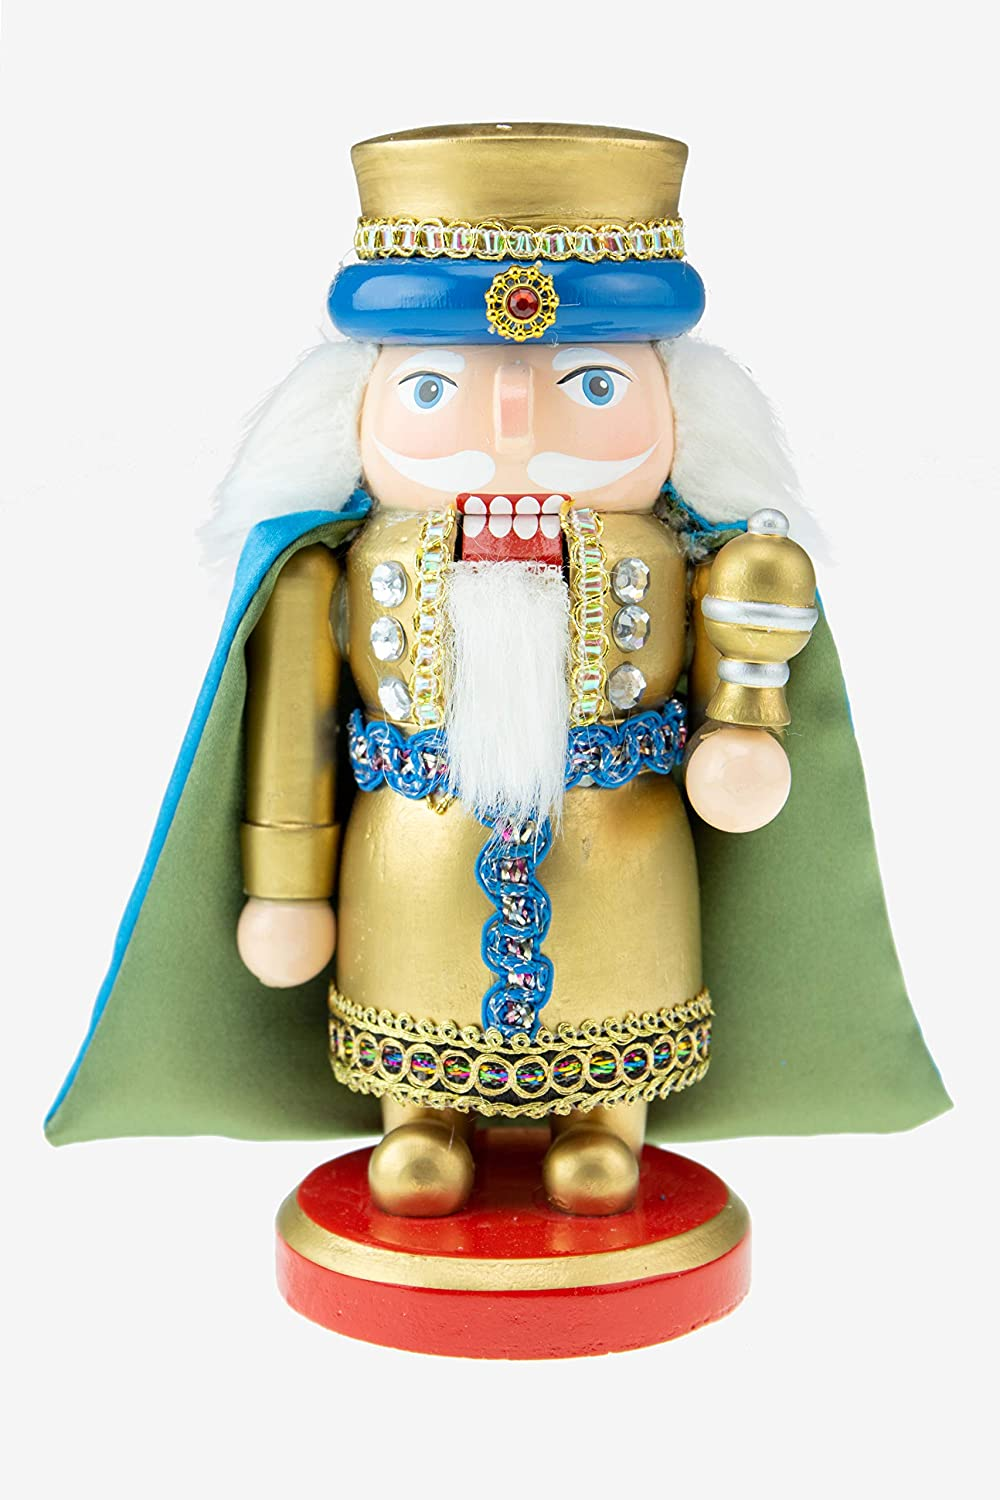 Clever Creations Traditional Wooden Scottish Small Wiseman with Myrrh Collectible Nutcracker, Festive Christmas Décor, Perfect for Shelves and Tables, 100% Wood